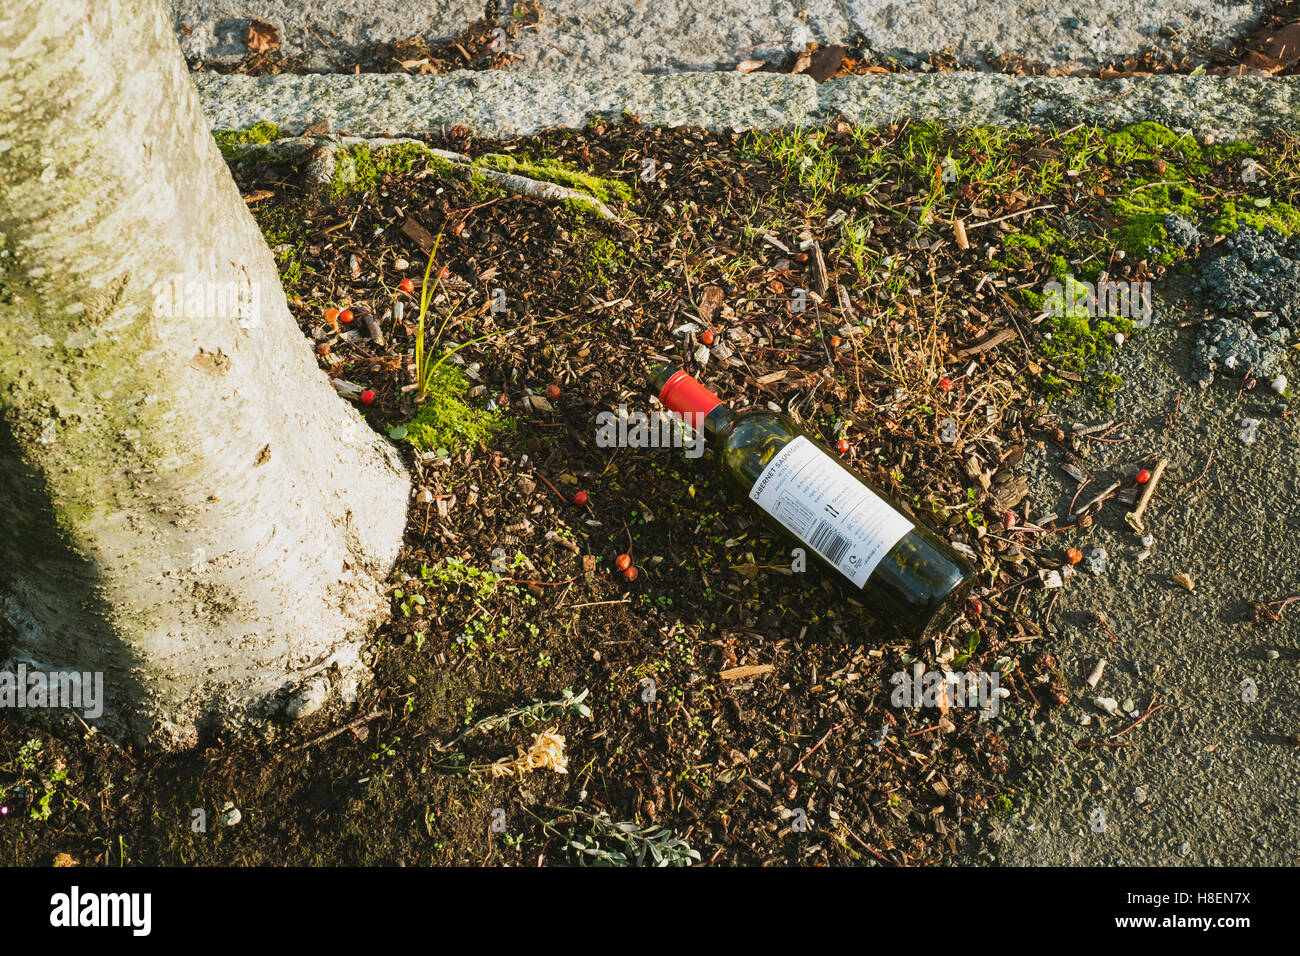 Empty bottle of red wine left on the pavement in a street in Falmouth, Cornwall 11th November 2016 Stock Photo